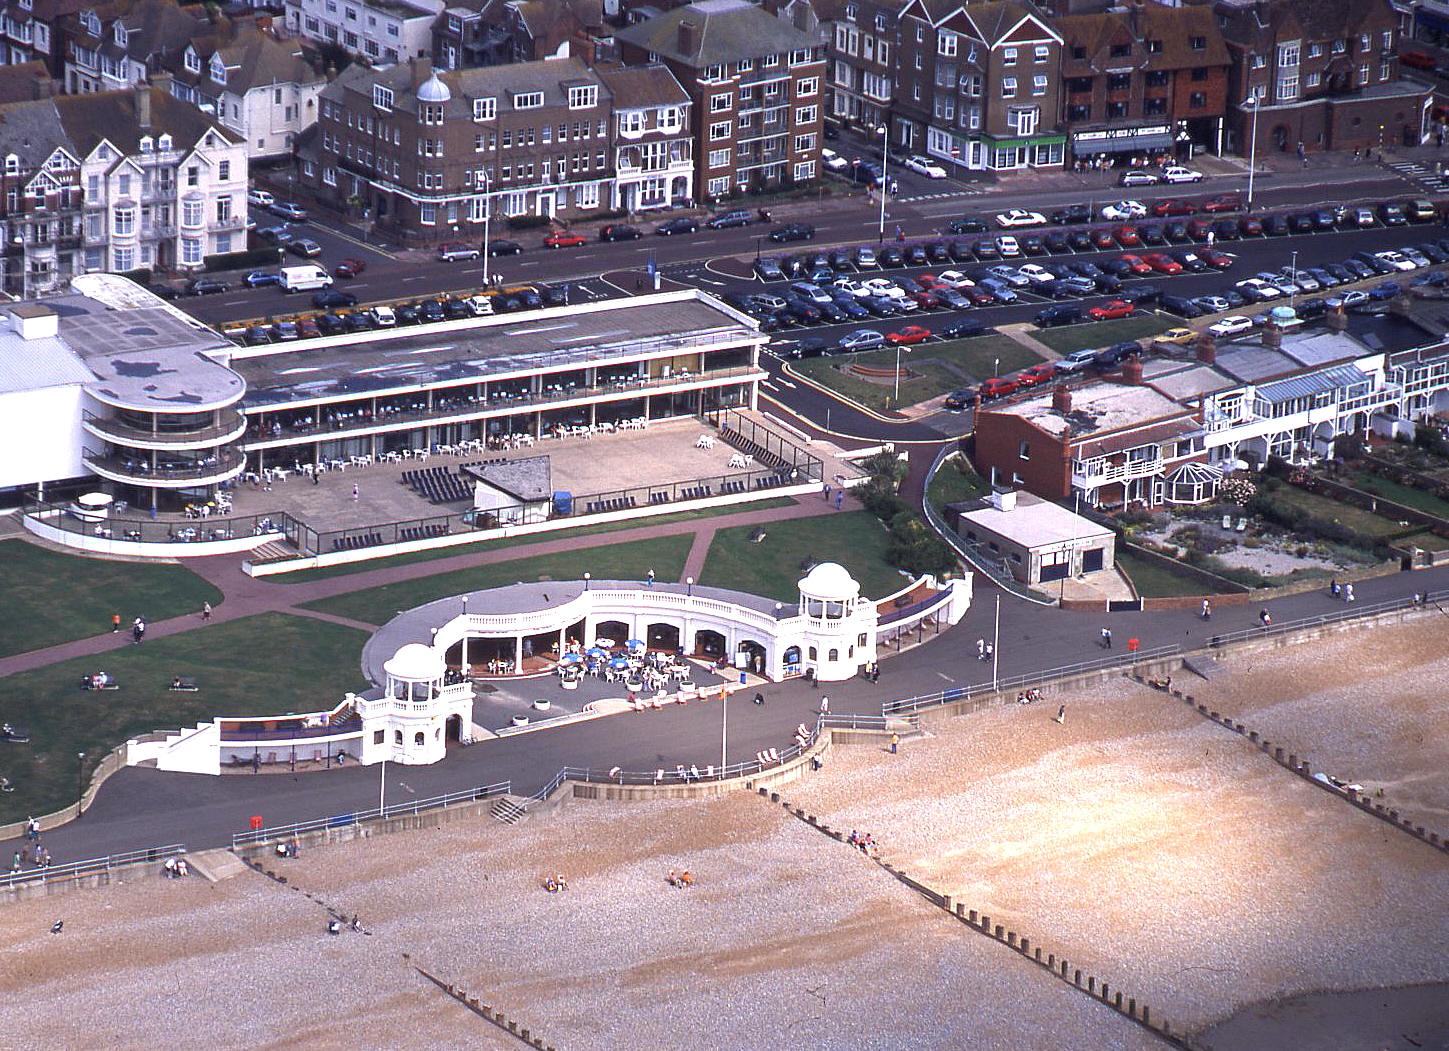 Bexhill in 2001 showing its three unique features - see note 2